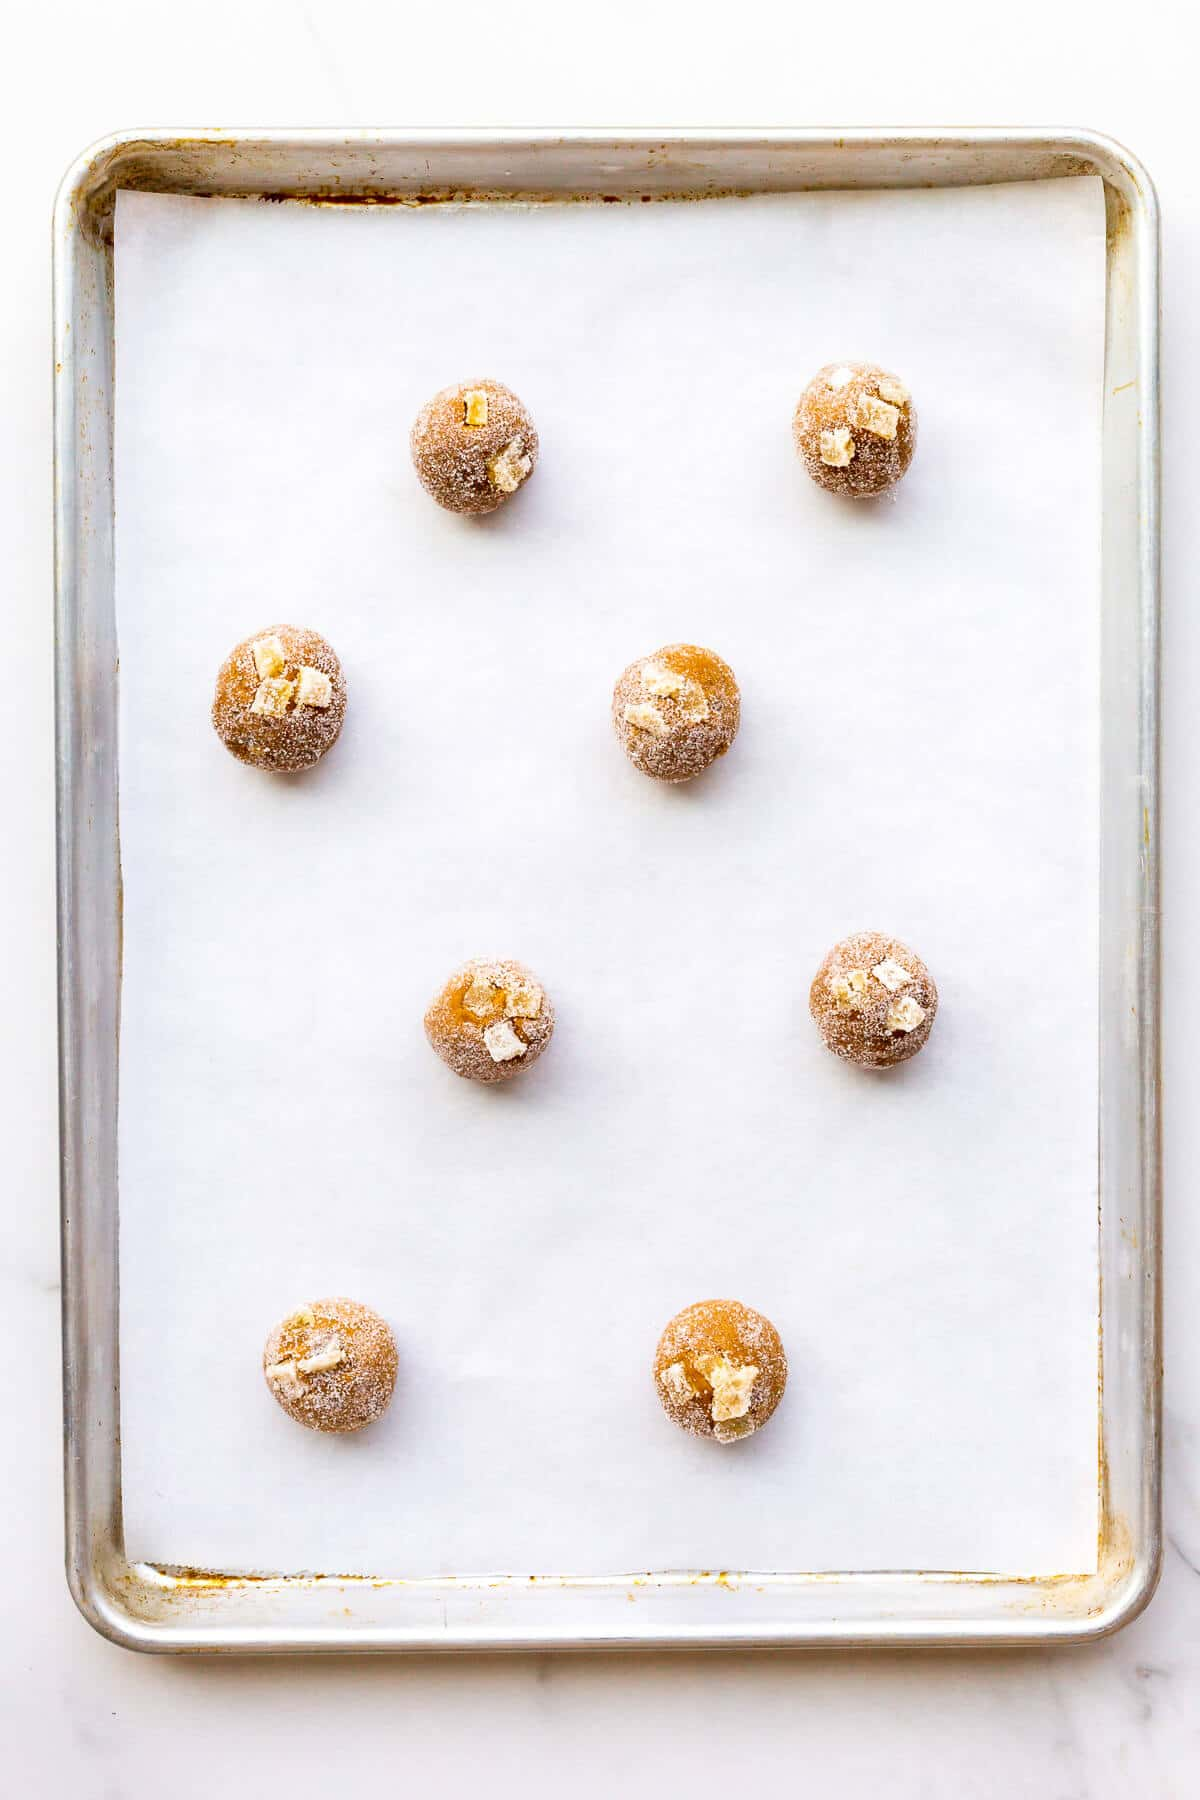 Scoops of ginger cookie dough rolled in granulated sugar before baking on a parchment-lined sheet pan.